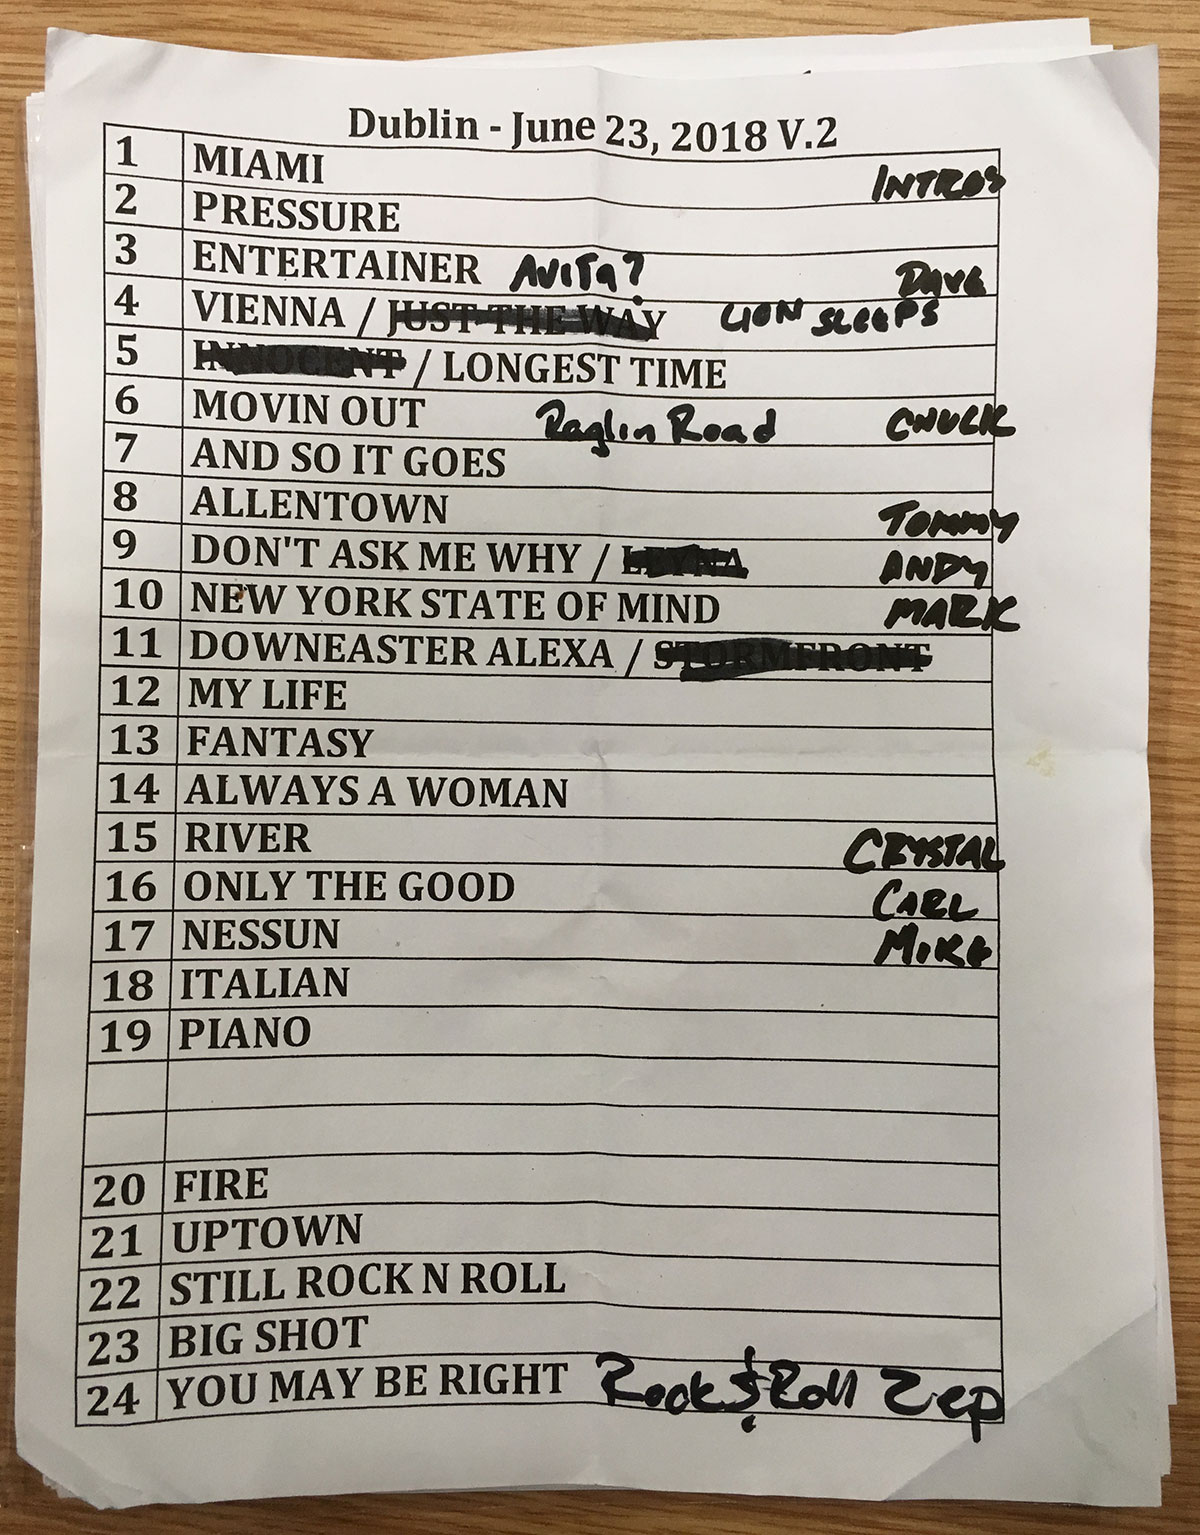 Set list from Billy Joel concert Aviva Stadium in Dublin, Ireland June 23, 2018